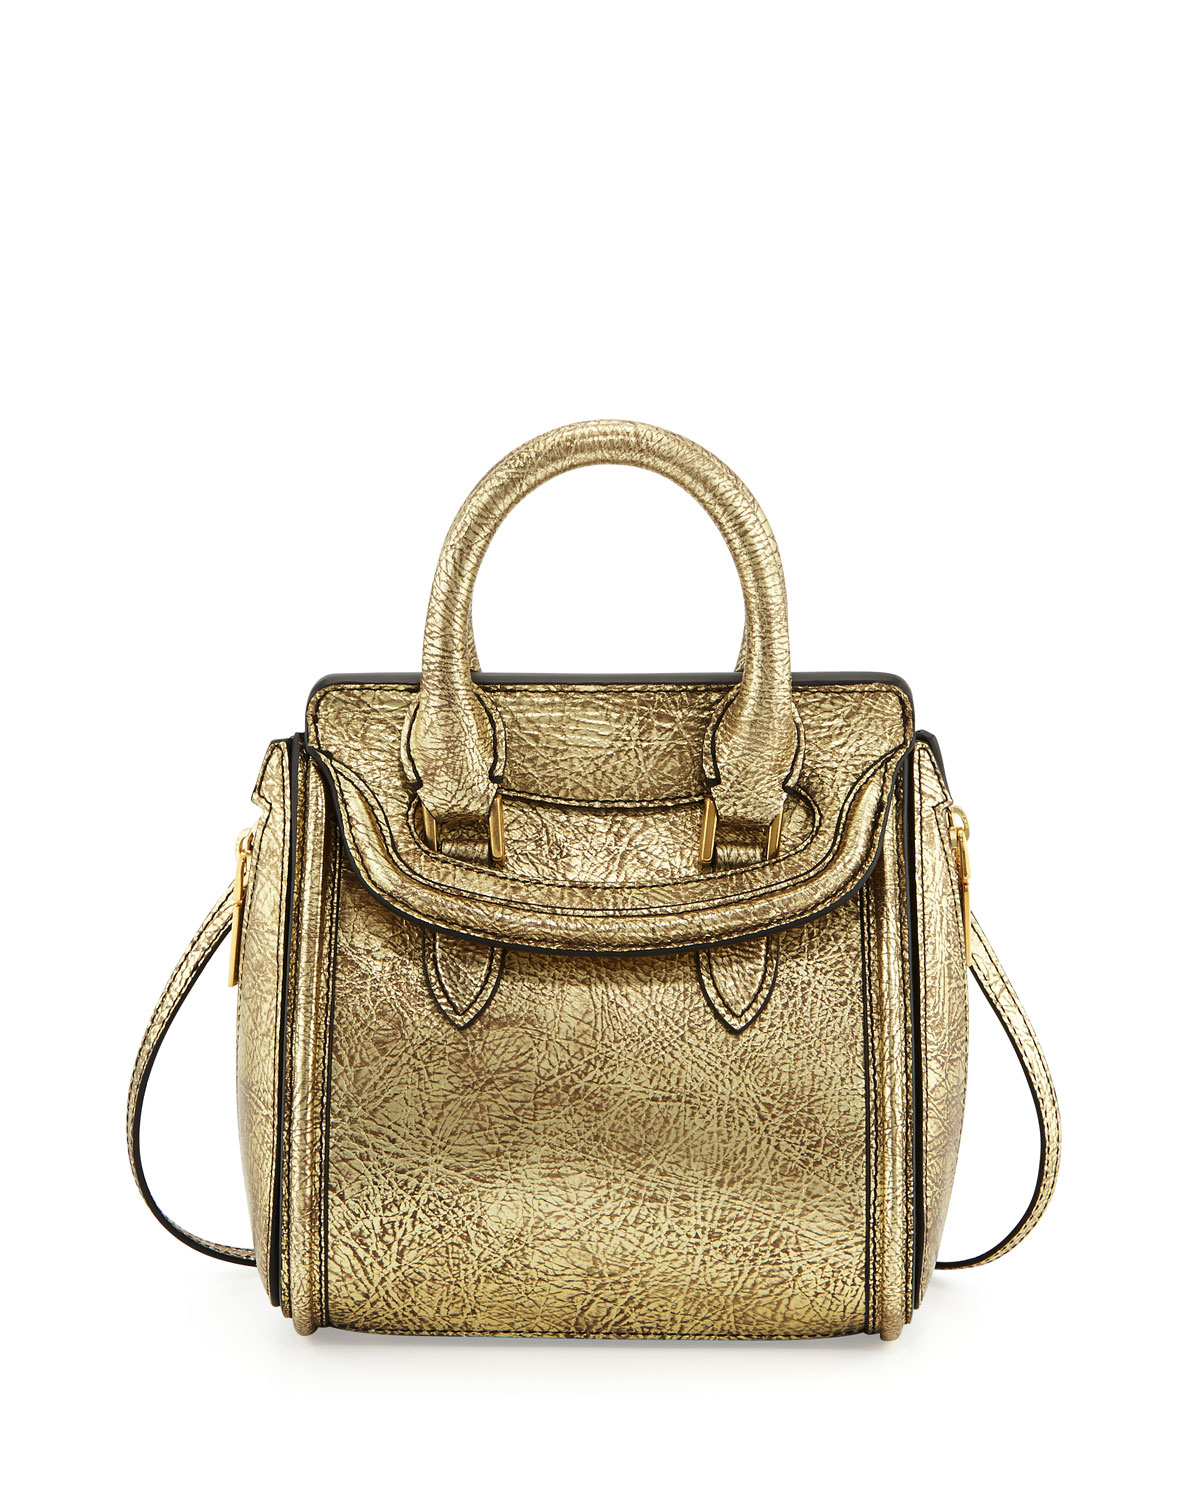 Alexander mcqueen Heroine Mini Metallic Satchel Bag in ...